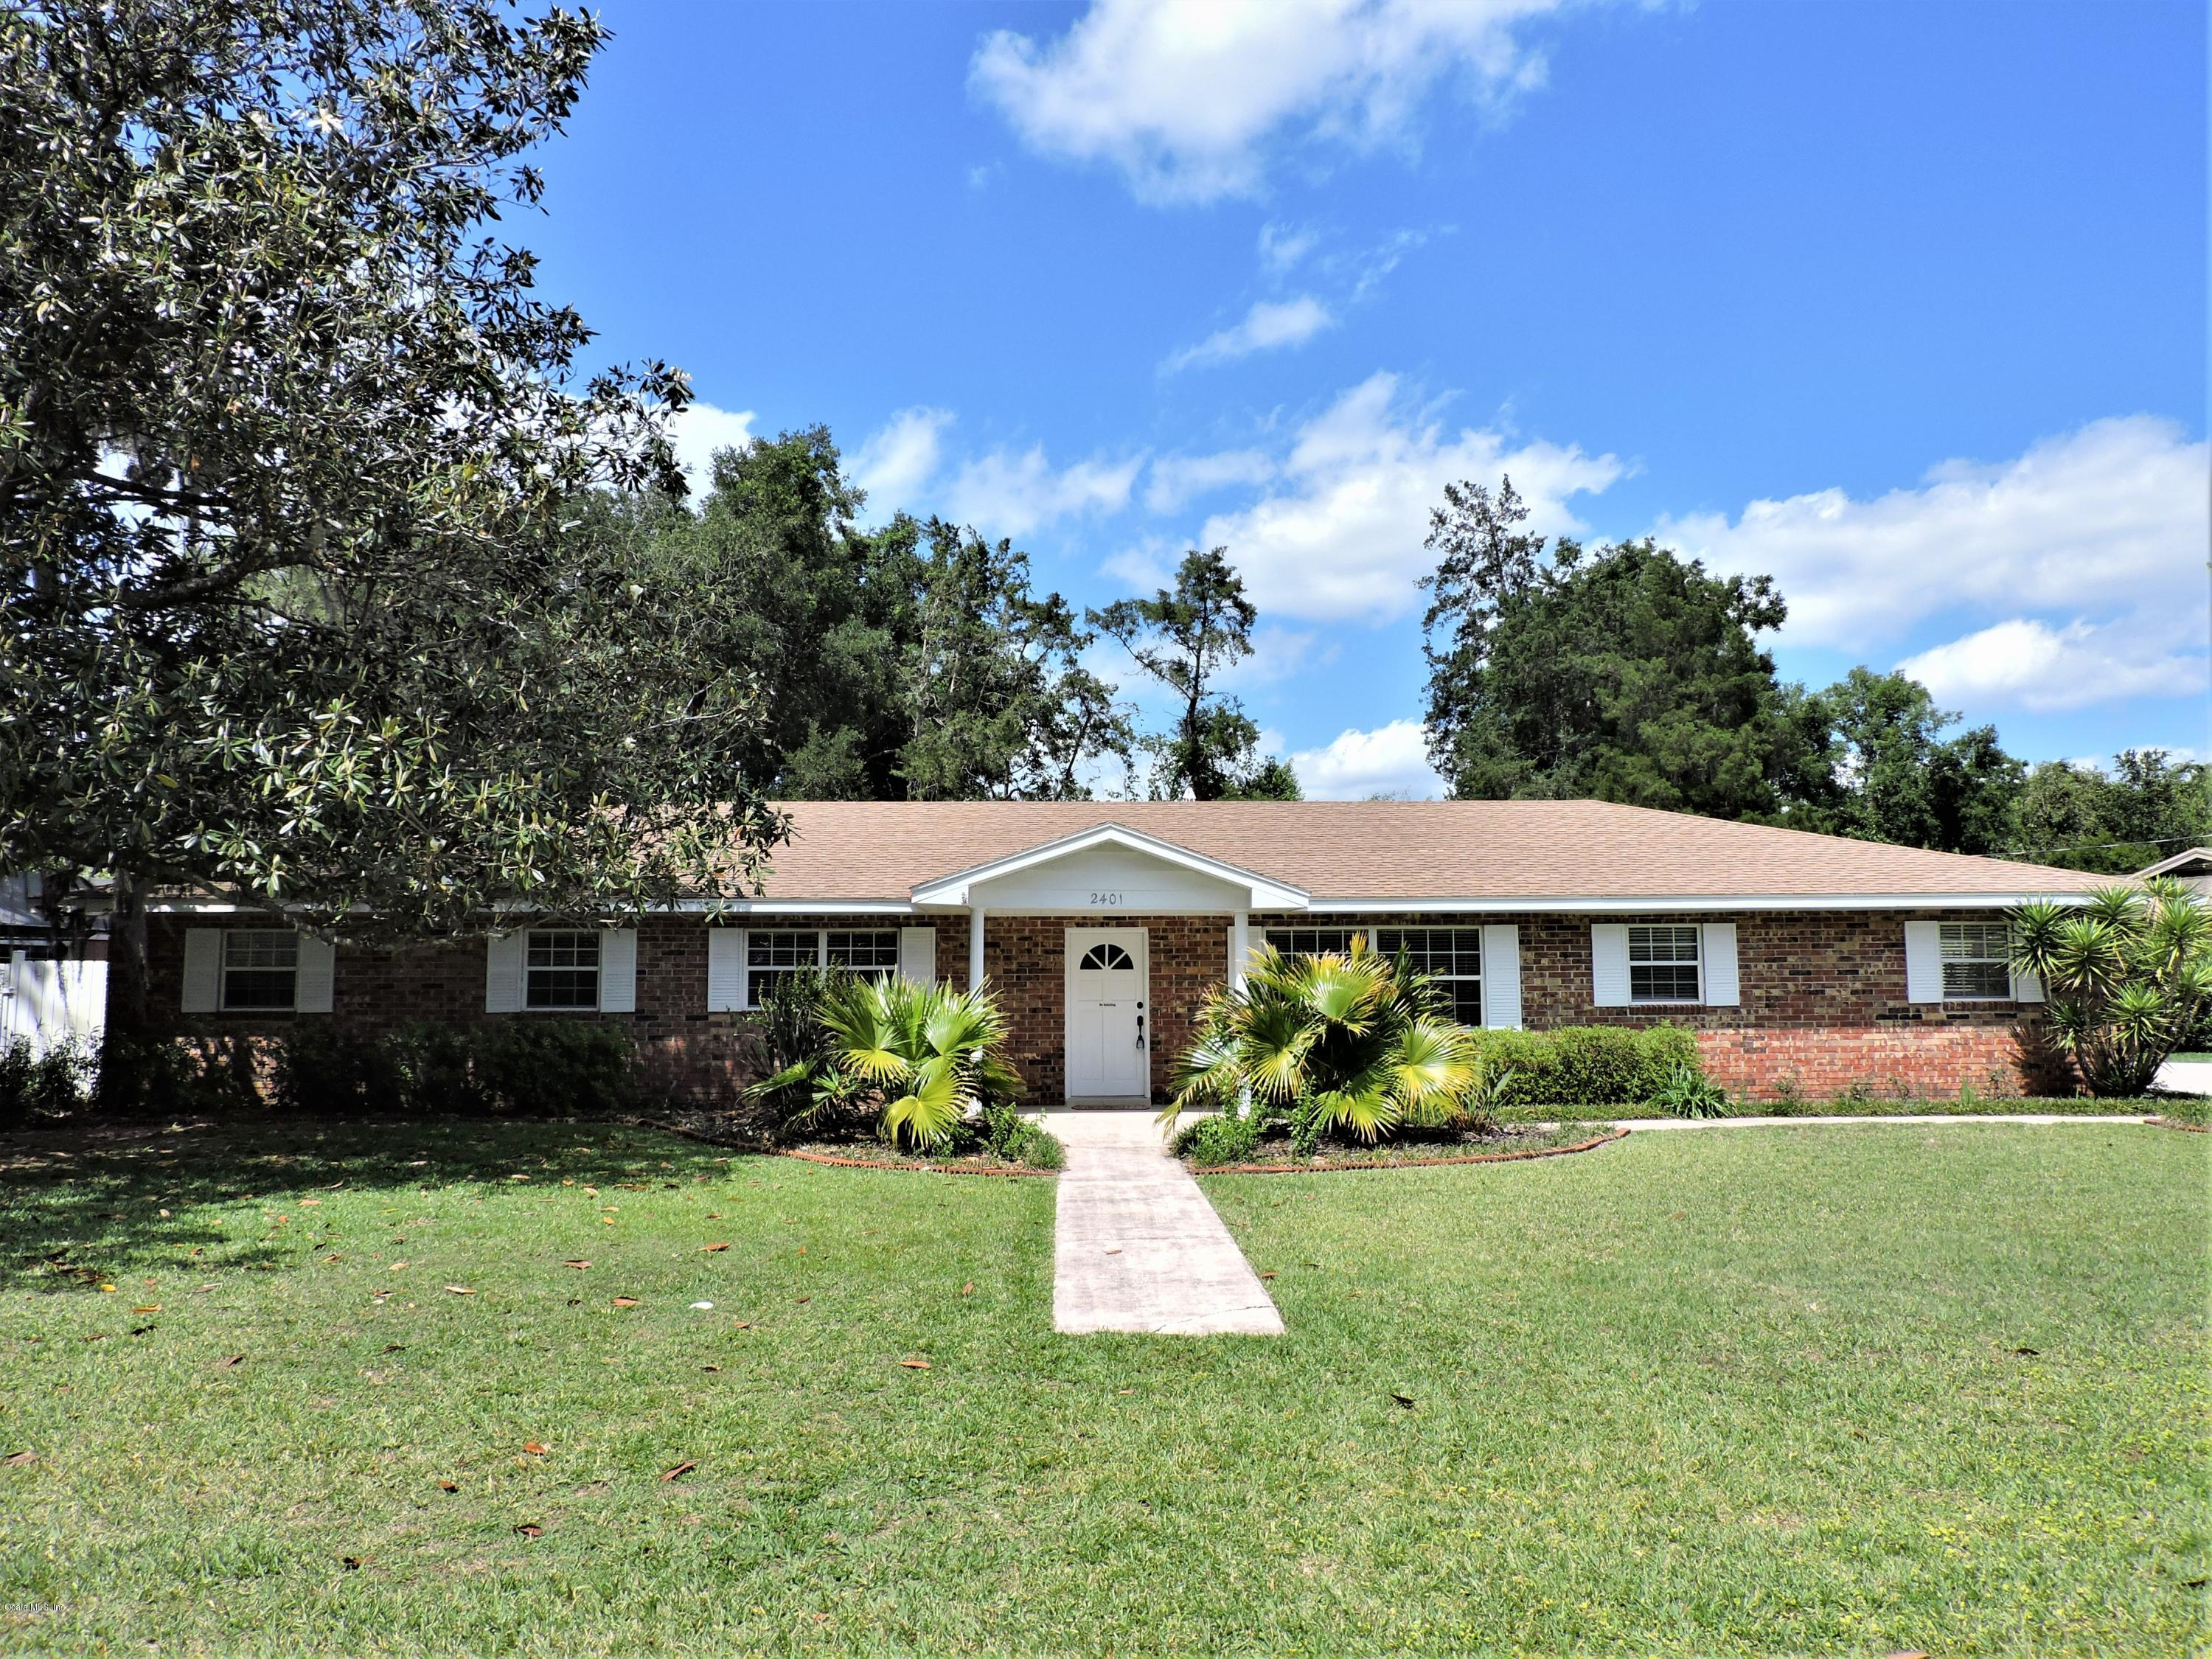 2401 SE 7TH STREET, OCALA, FL 34471